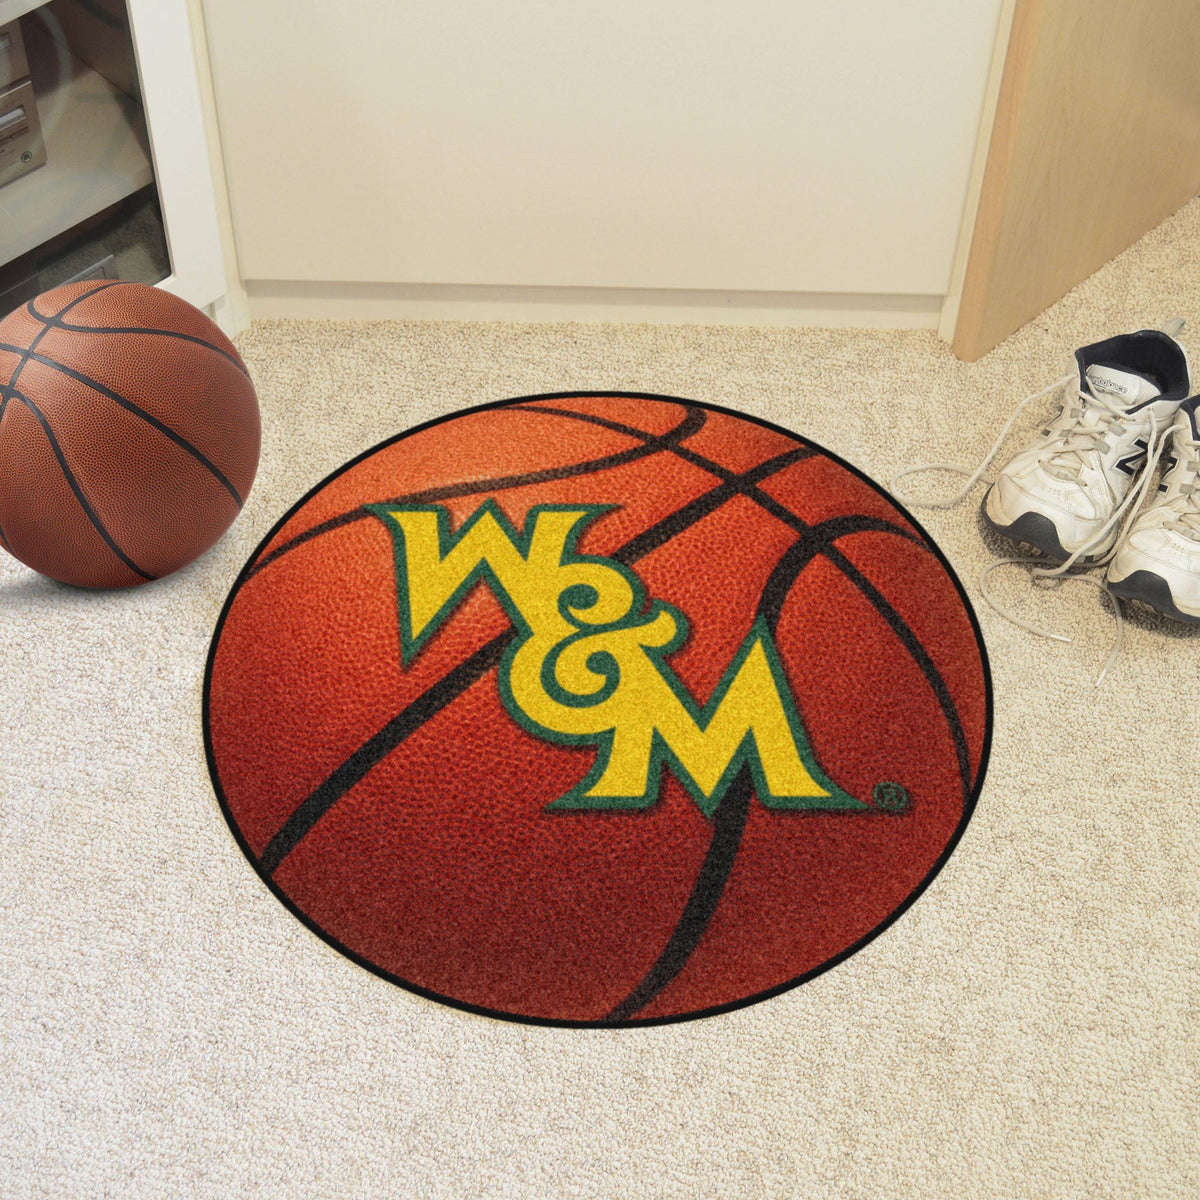 Collegiate - Basketball Mat: T - Z Collegiate Mats, Rectangular Mats, Basketball Mat, Collegiate, Home Fan Mats William & Mary